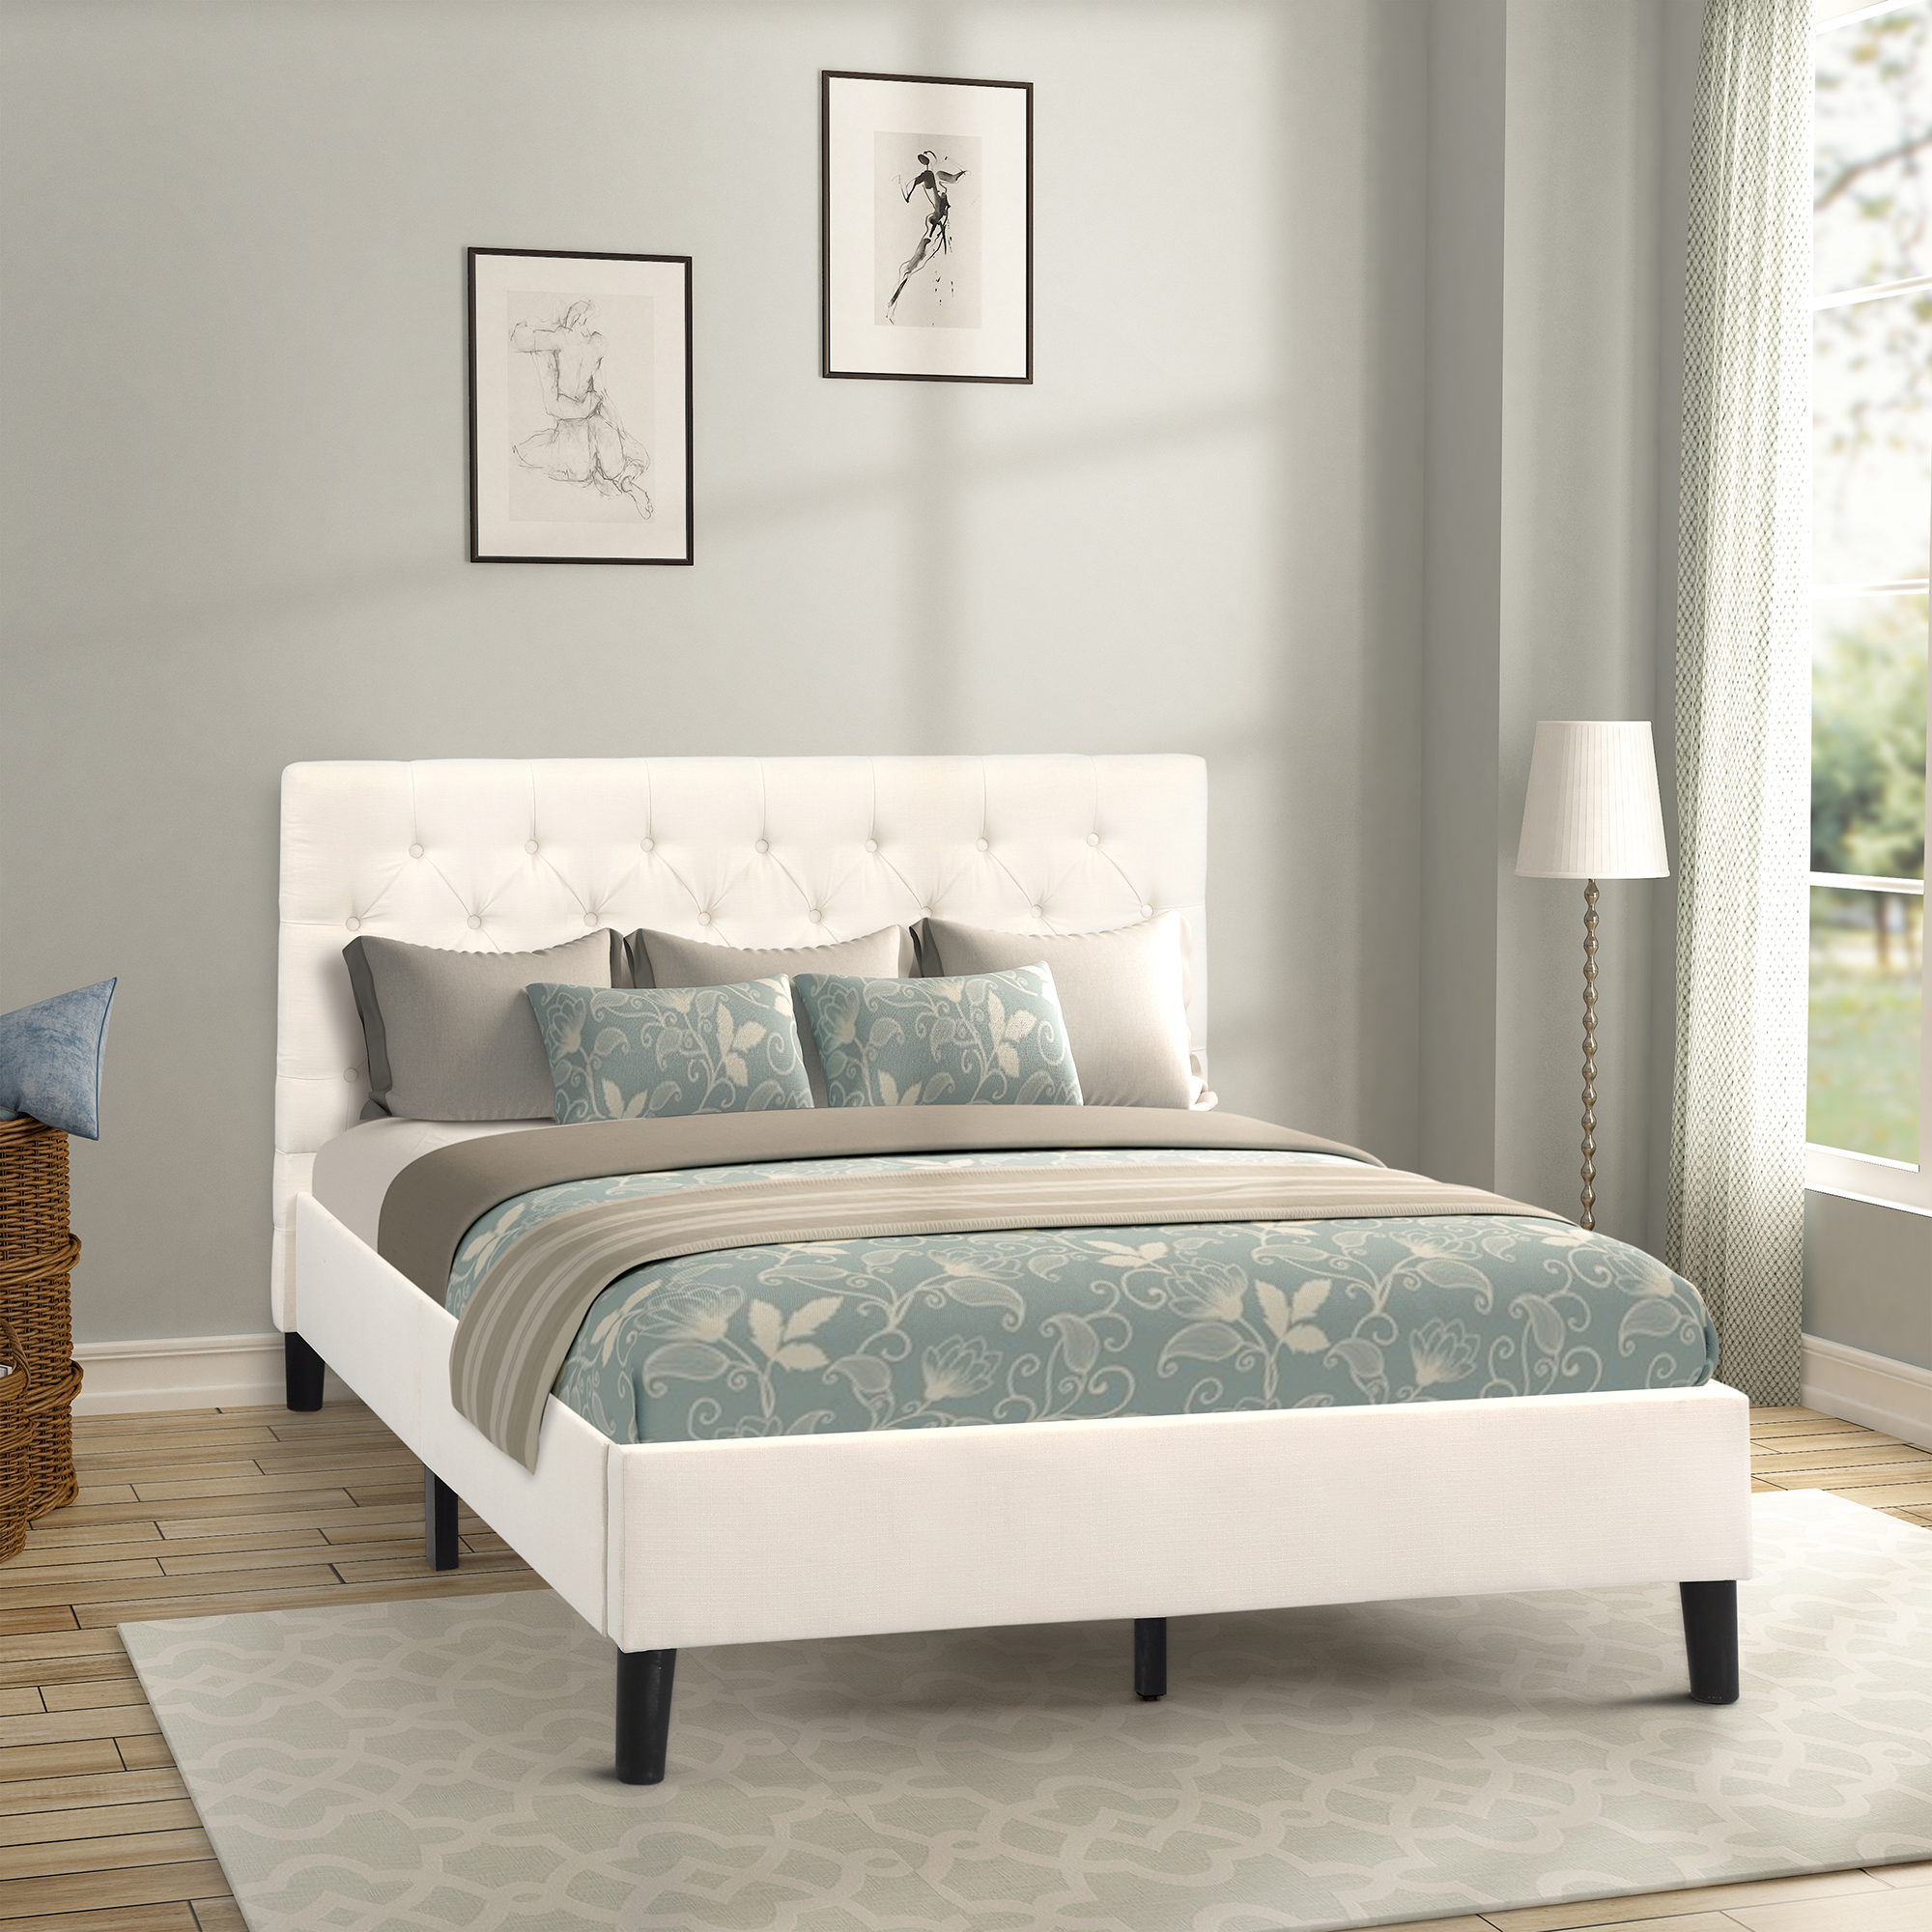 clearance queen bed frames for kids heavy duty wood on walmart bedroom furniture clearance id=76860